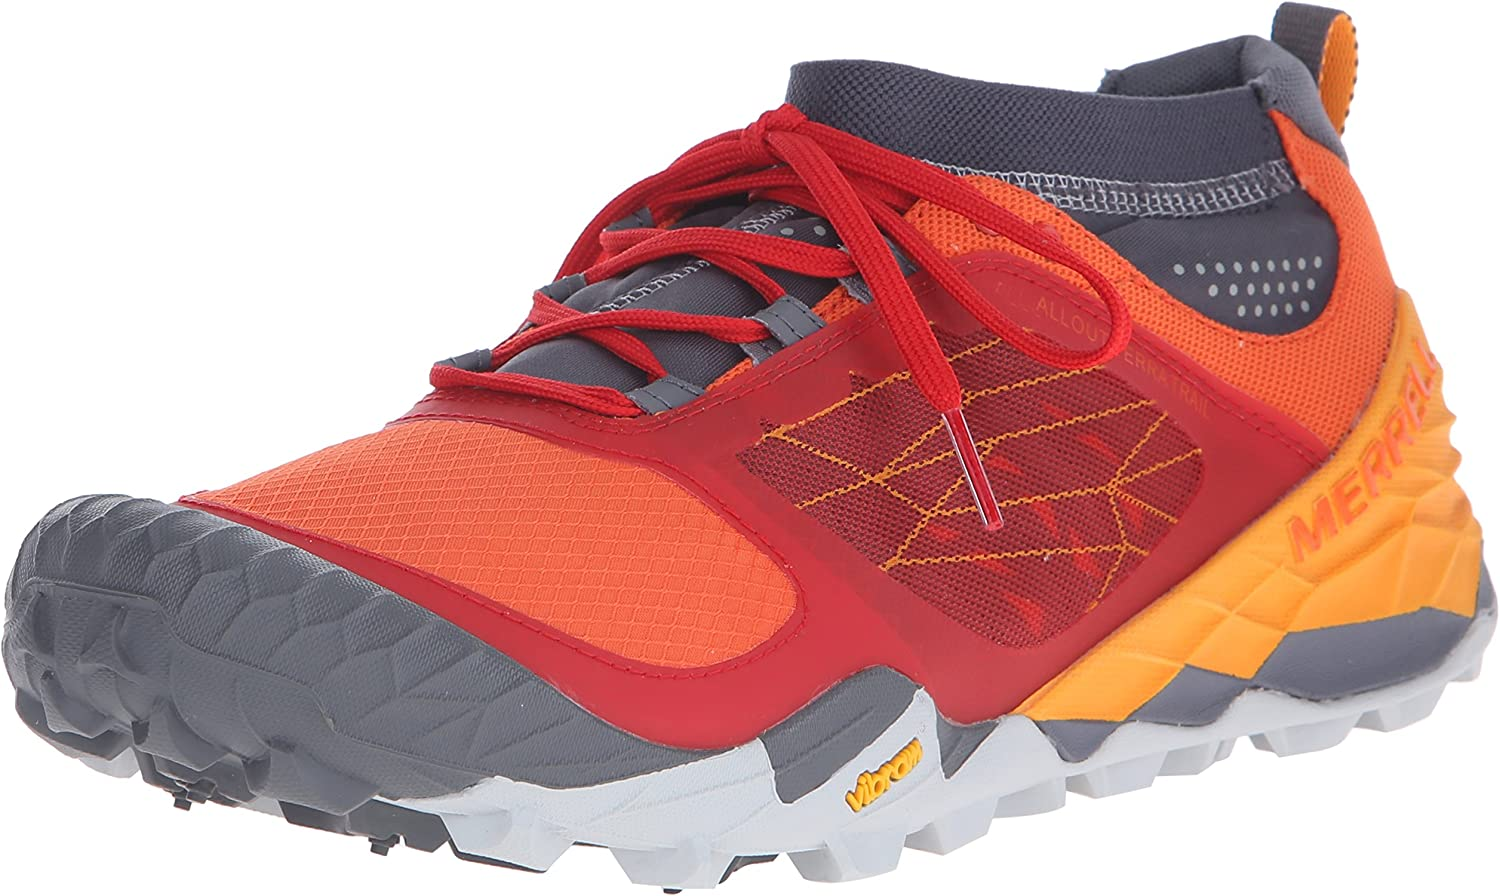 Merrell Men's All Out Terra Trail Trail Running shoes